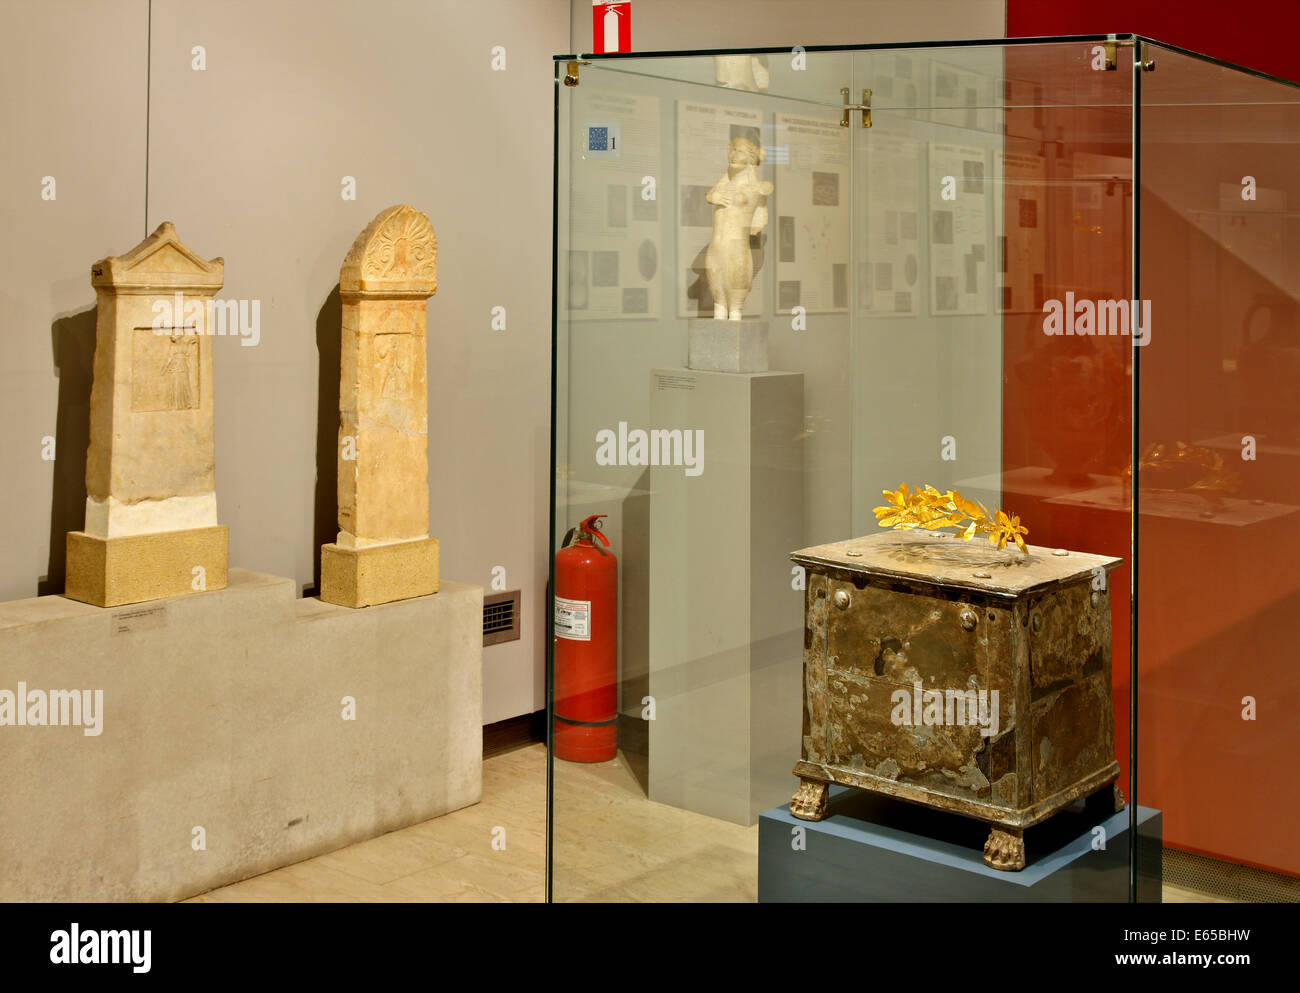 A sirver ossuary containing a golden wreath of olive leaves,Archaeological Museum of Amphipolis, Serres, Macedonia, - Stock Image